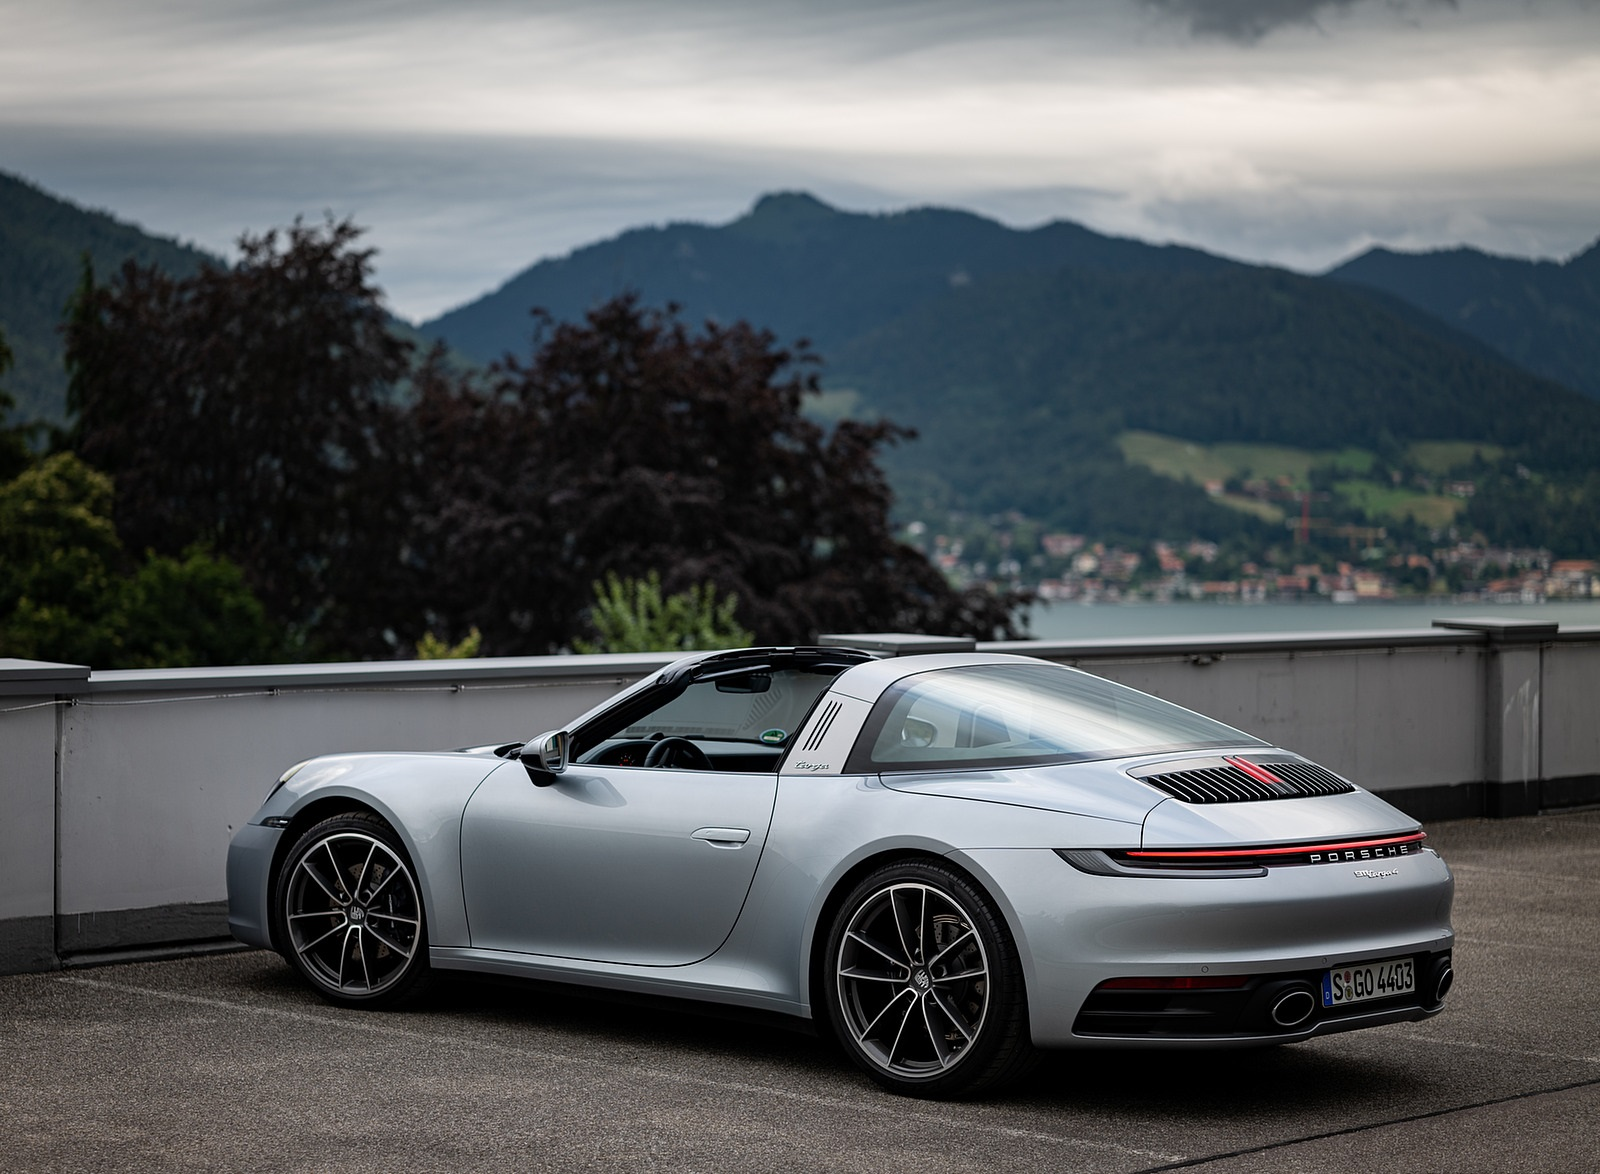 2021 Porsche 911 Targa 4 (Color: Dolomite Silver Metallic) Rear Three-Quarter Wallpapers (2)